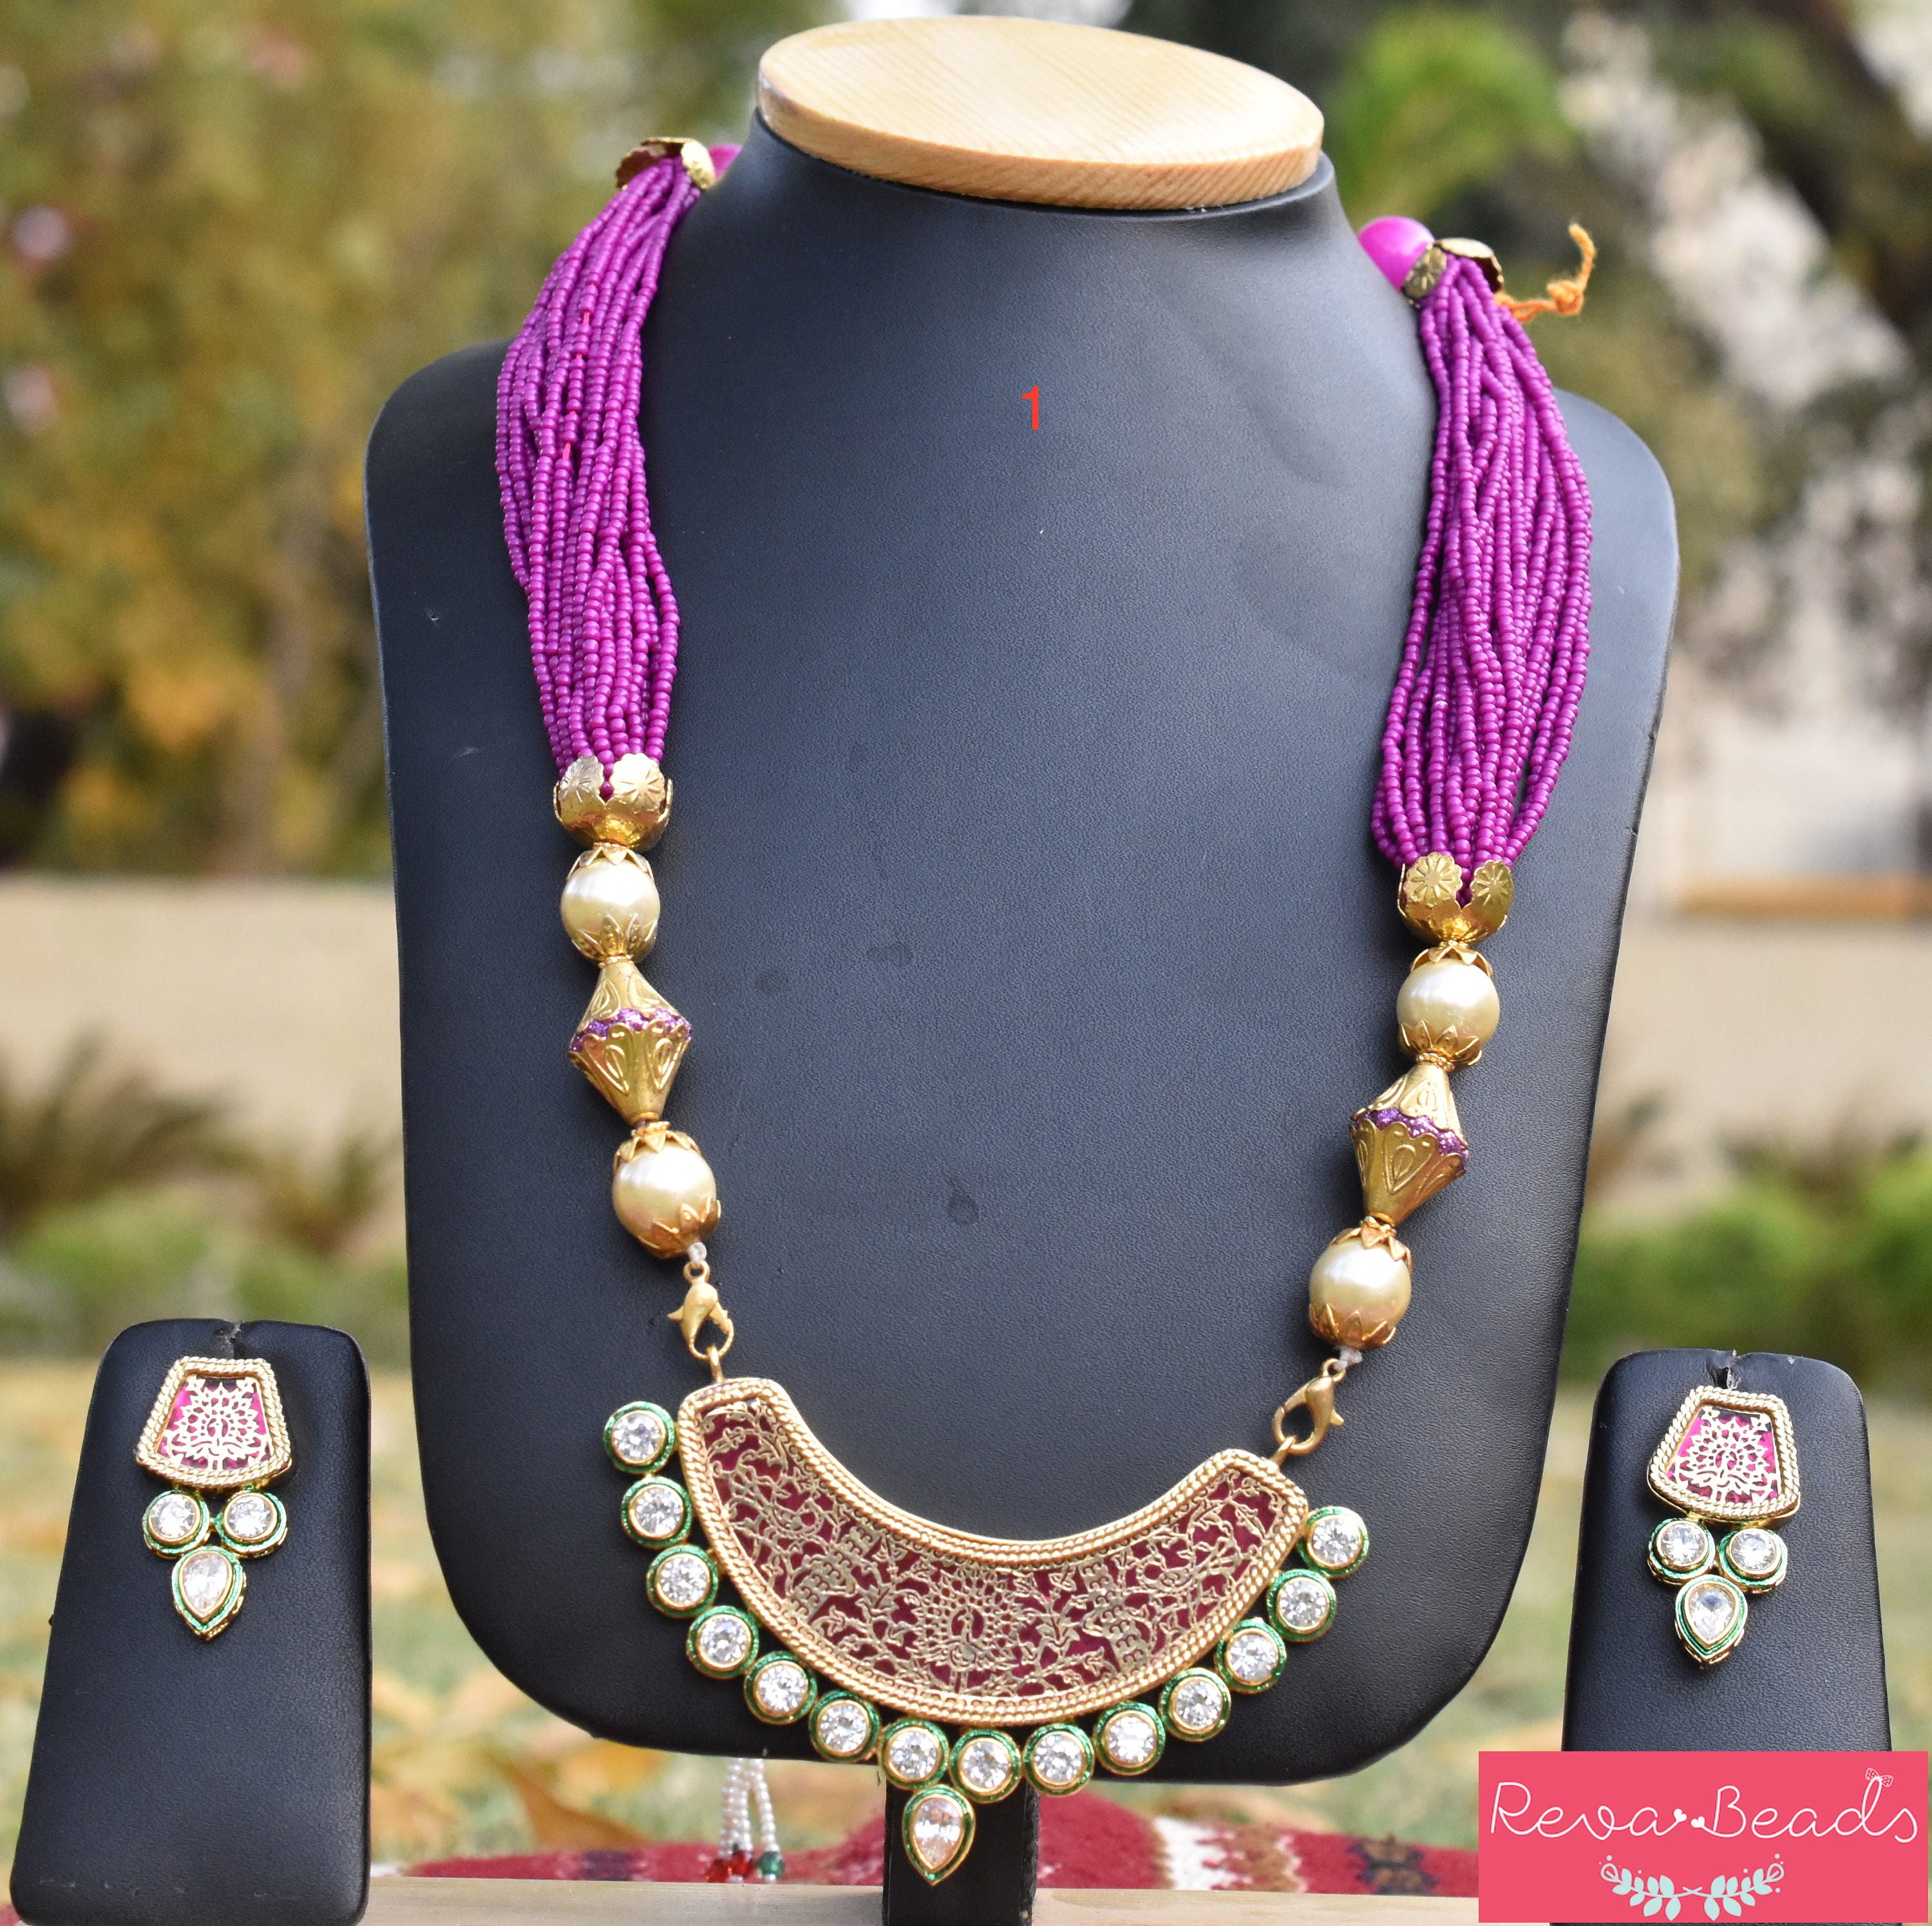 ada1504870790 Traditional Indian pendant earring sets with kundan, decorative brushed  beads, glass beads, seed beads with adjustable dori